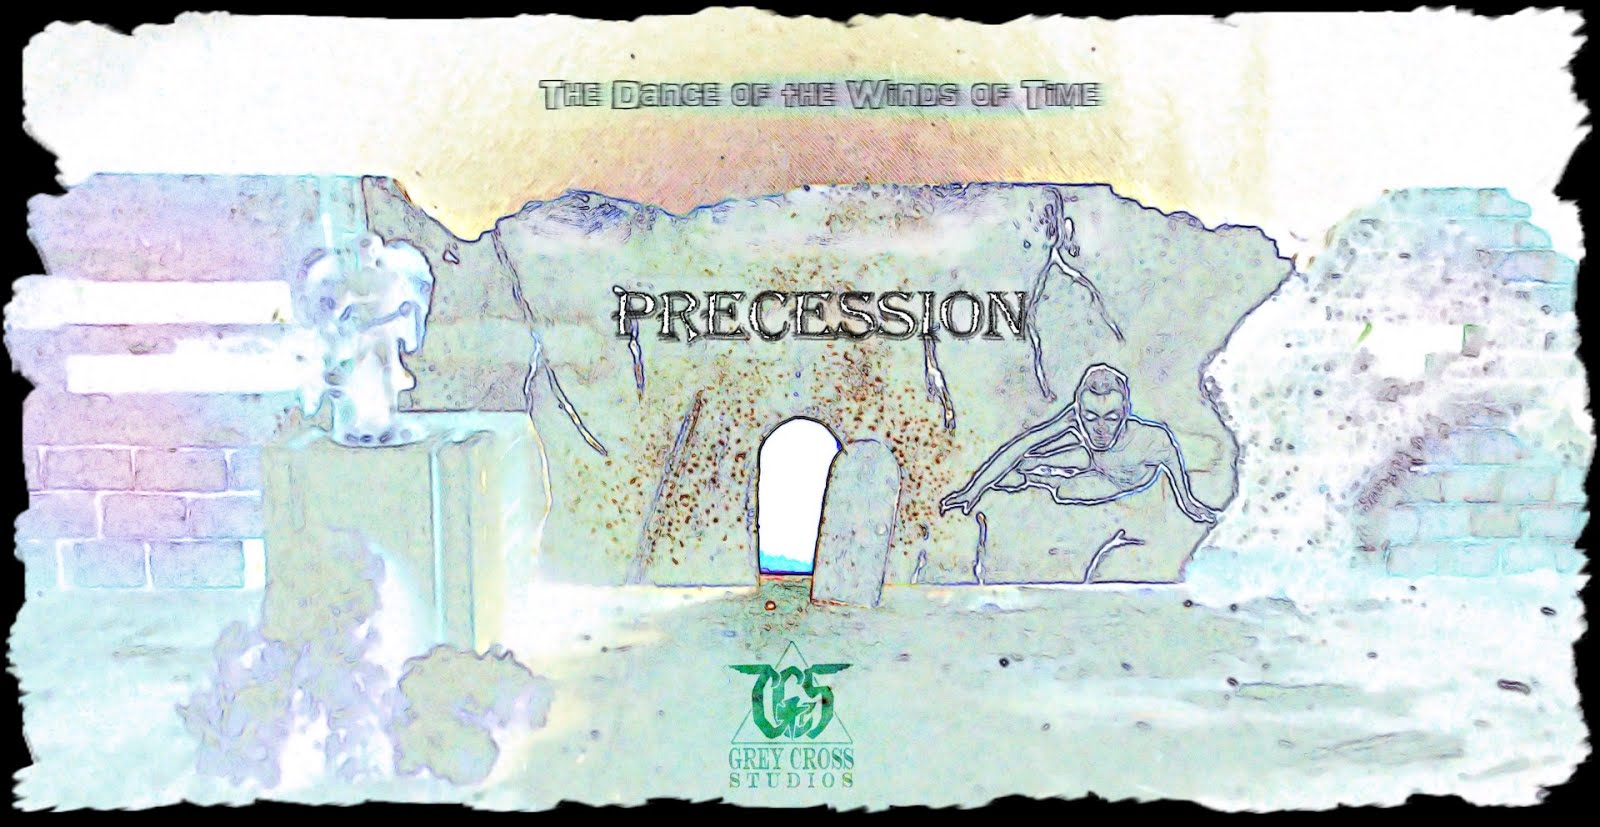 The Precession Project - The Dance of the Winds of Time